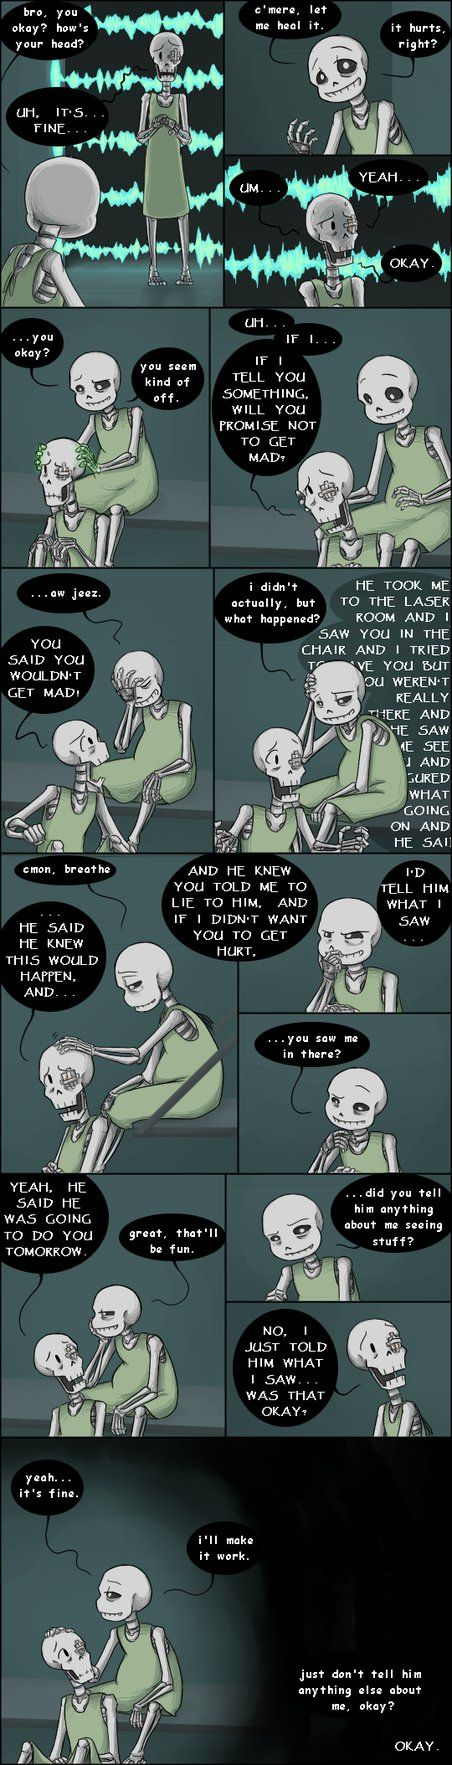 An Undertale AU where Sans and Papyrus were experiments of Gaster's and a whole lot of suffering ensues. Each comic is usually about a stand-alone moment, but they're in roughly chronological order...